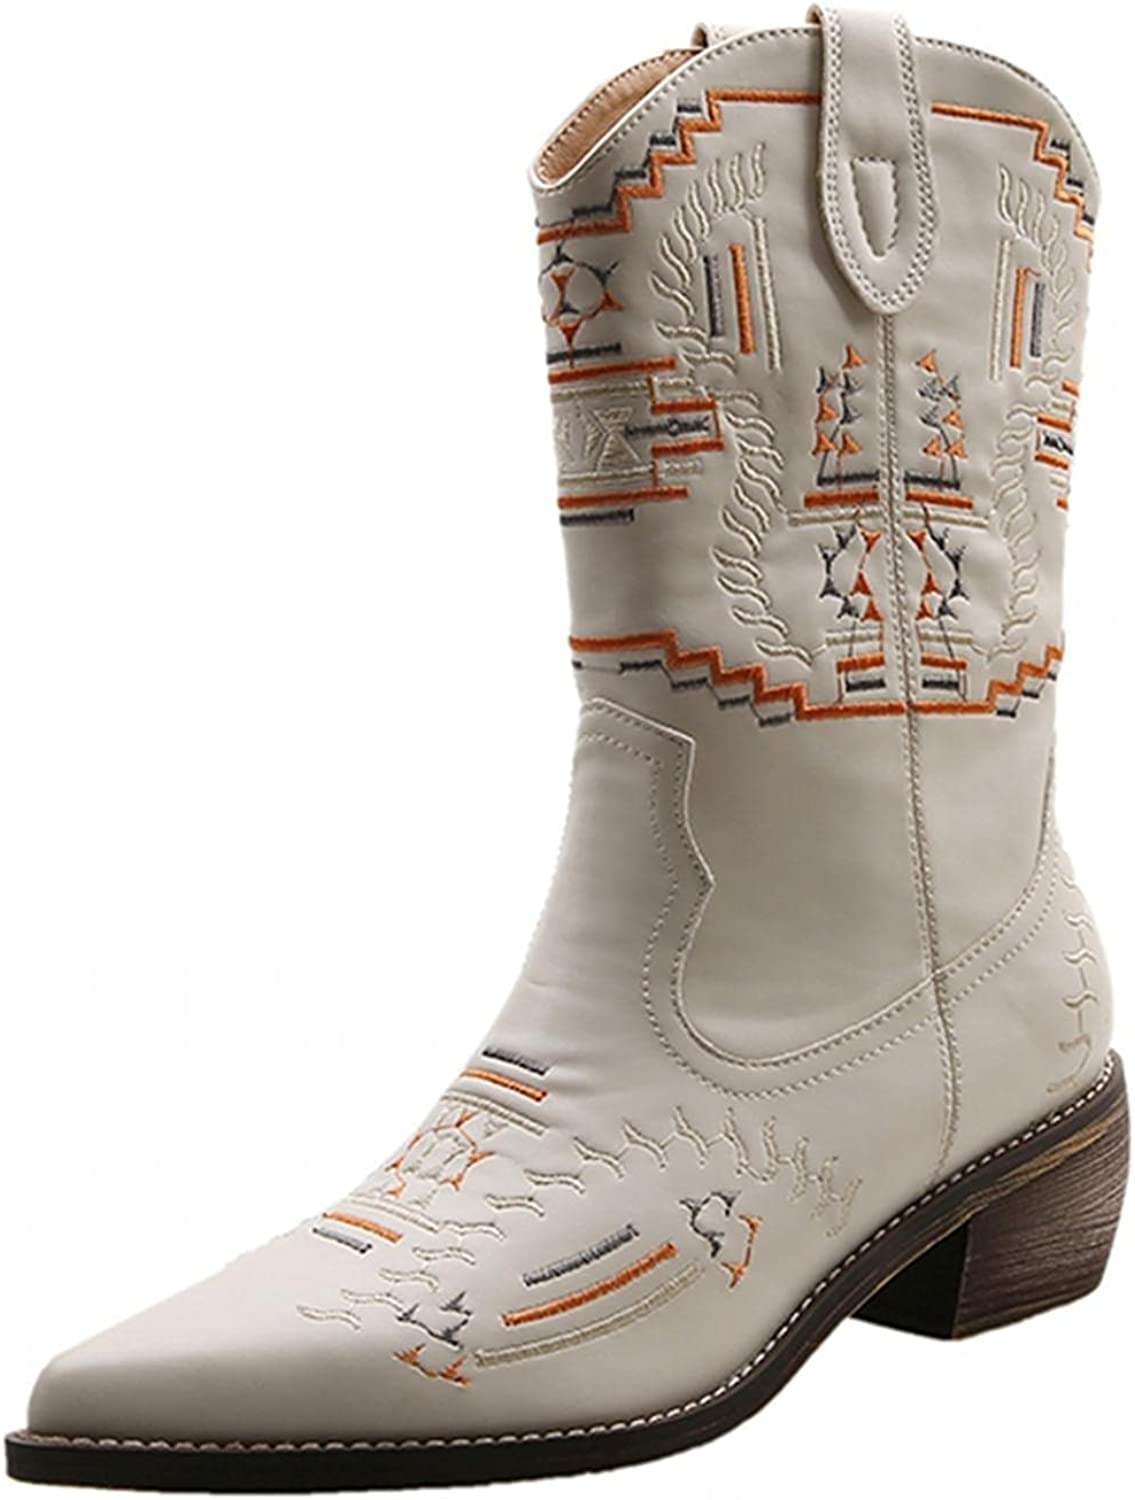 Niceast Boots for Women Point Toe Mid Calf Boots Retro Comfortab